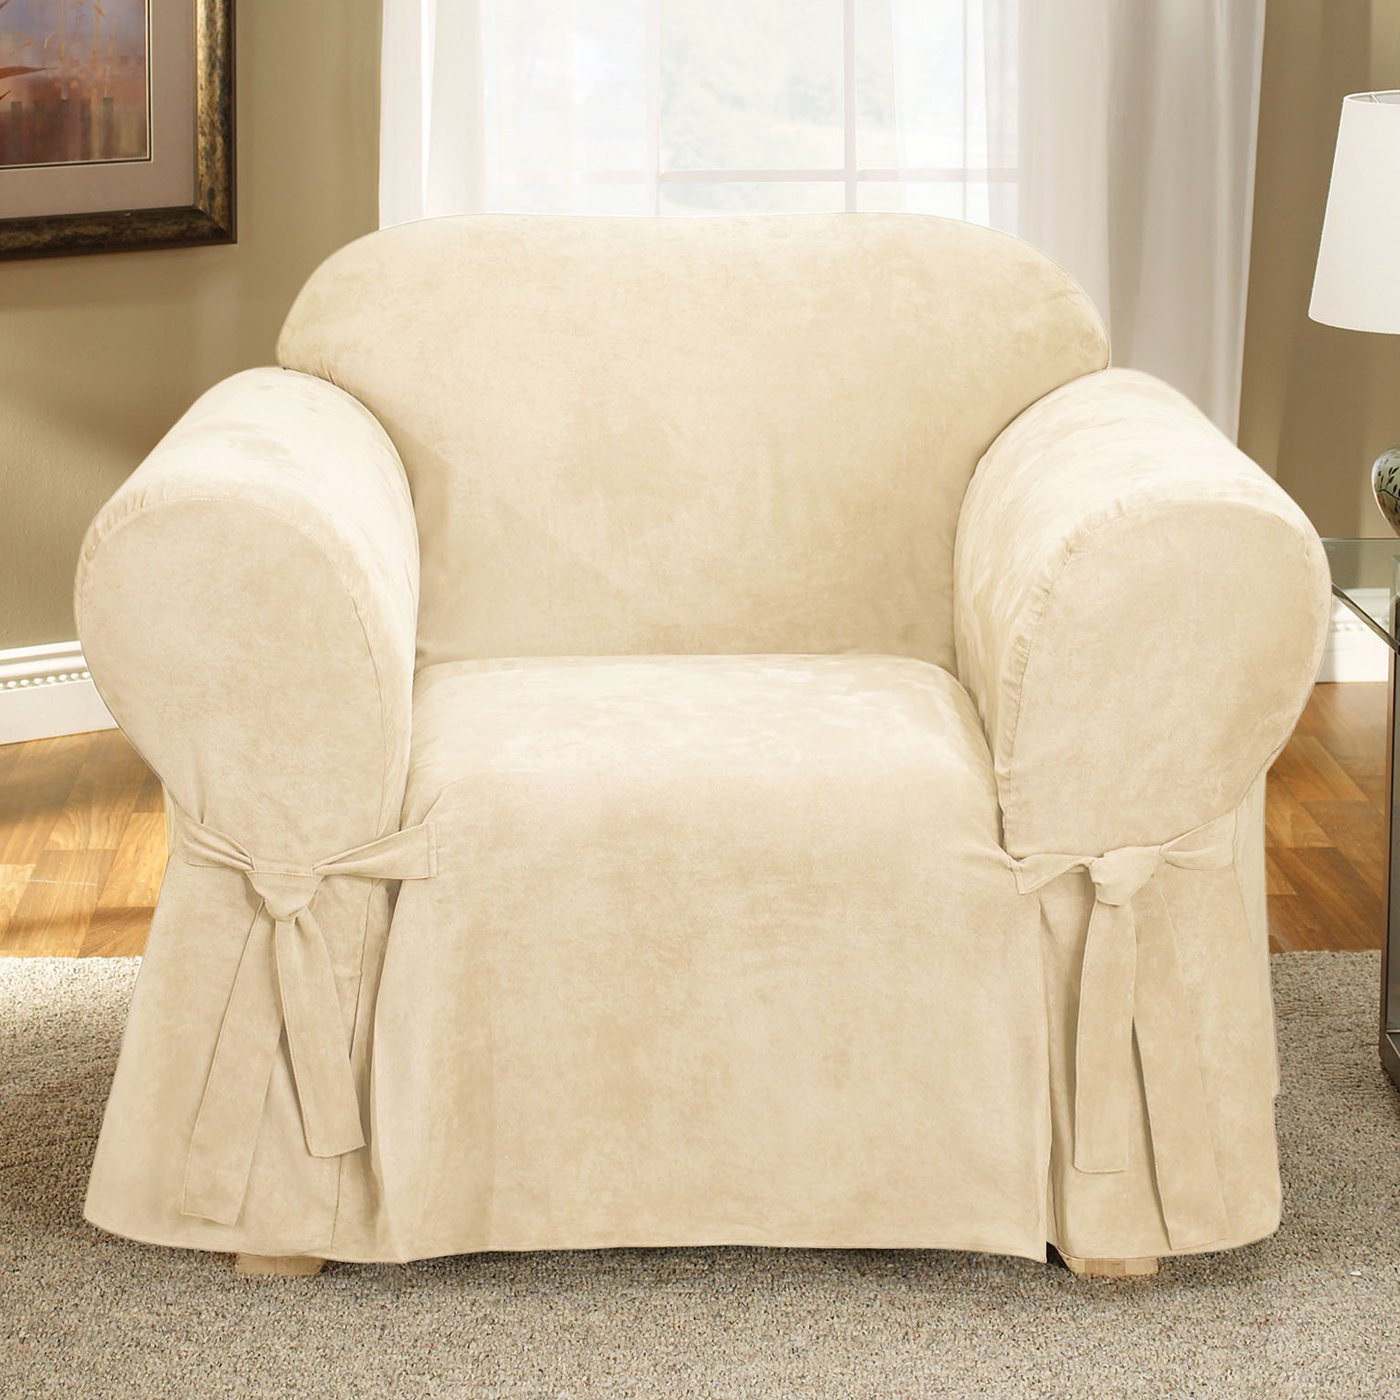 Best ideas about Surefit Chair Cover . Save or Pin Sure Fit Slipcovers Soft Suede 1 Piece Chair Slipcover Now.